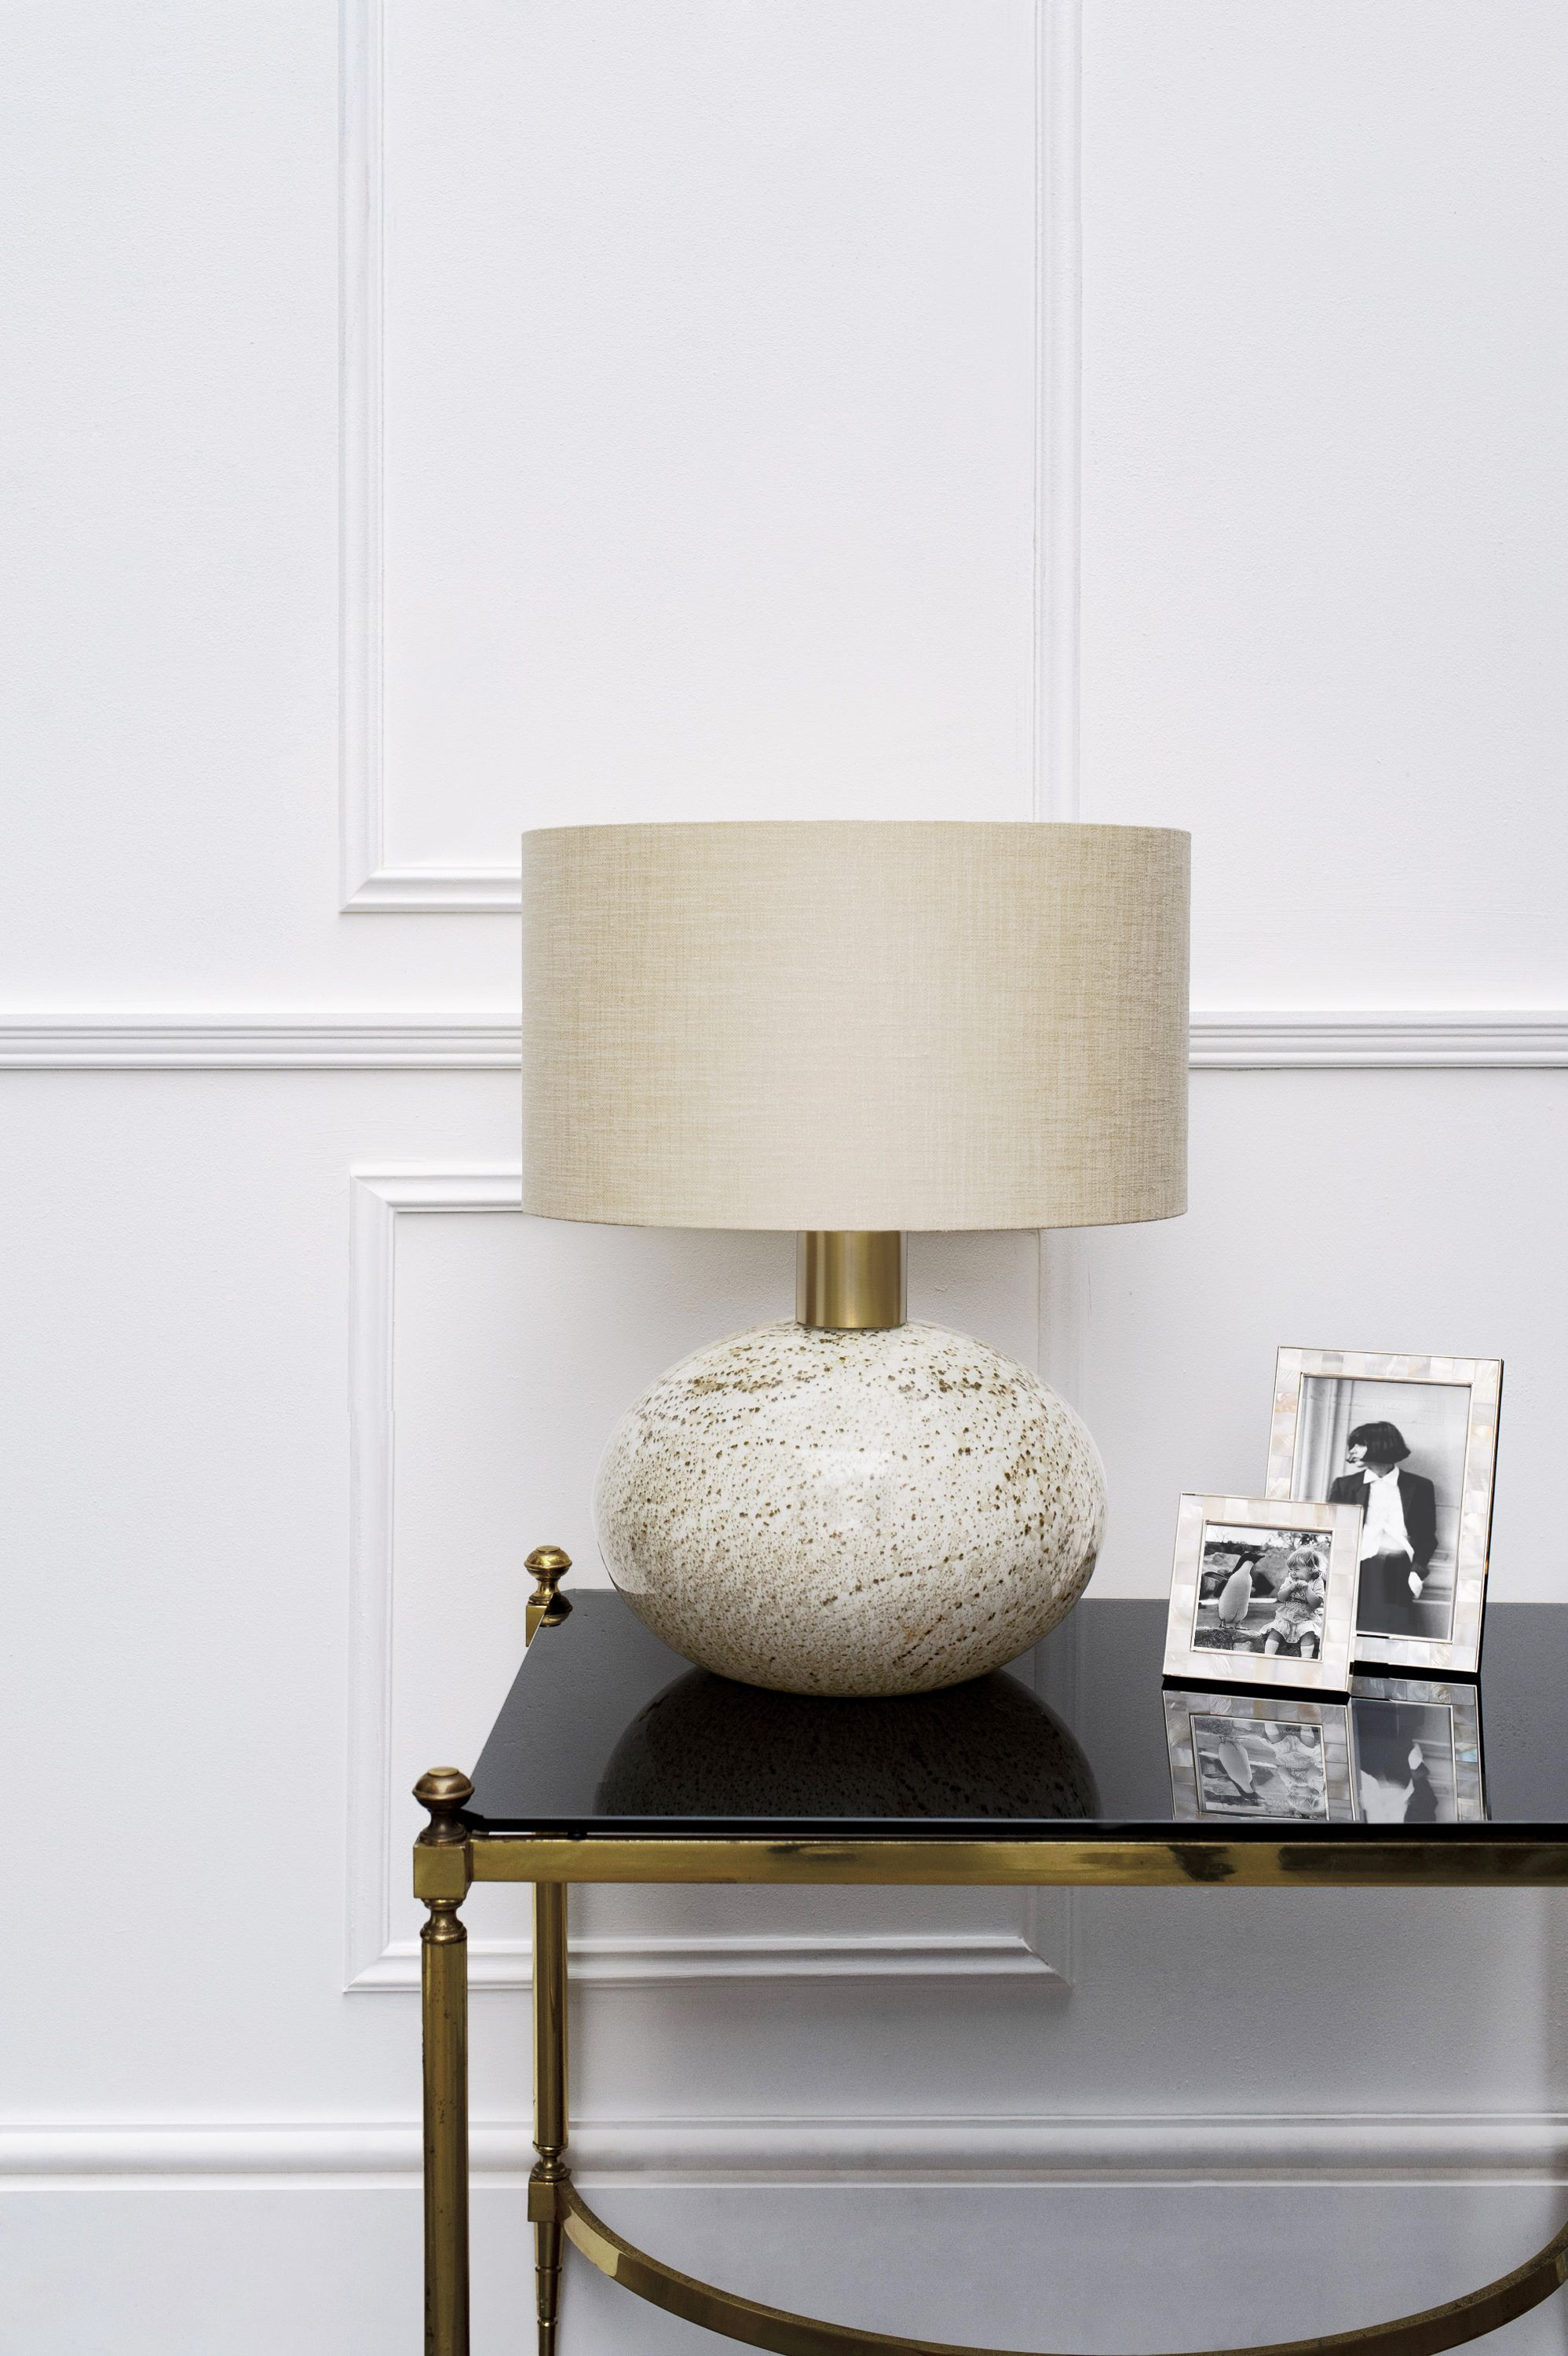 Crafters Of Decorative Glass Pendant Lights Sculptural Table Lamps And Many A Fixture More British Brand Heathfield Co Is A Na In 2020 Lamp Table Lamp Lamp Shades